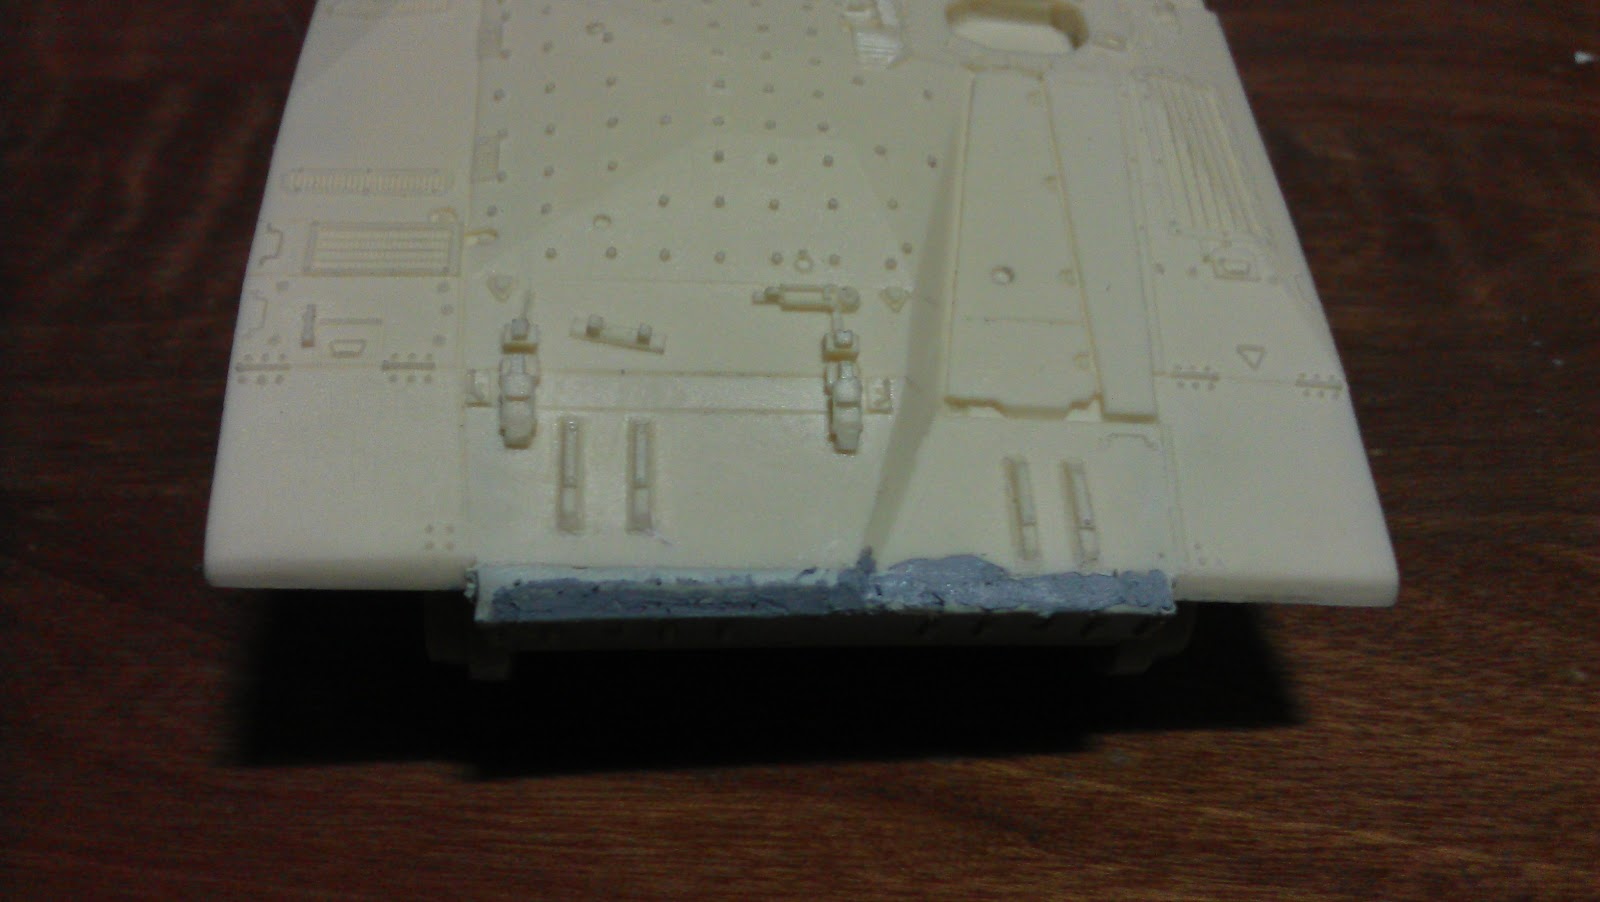 tamiya epoxy putty instructions